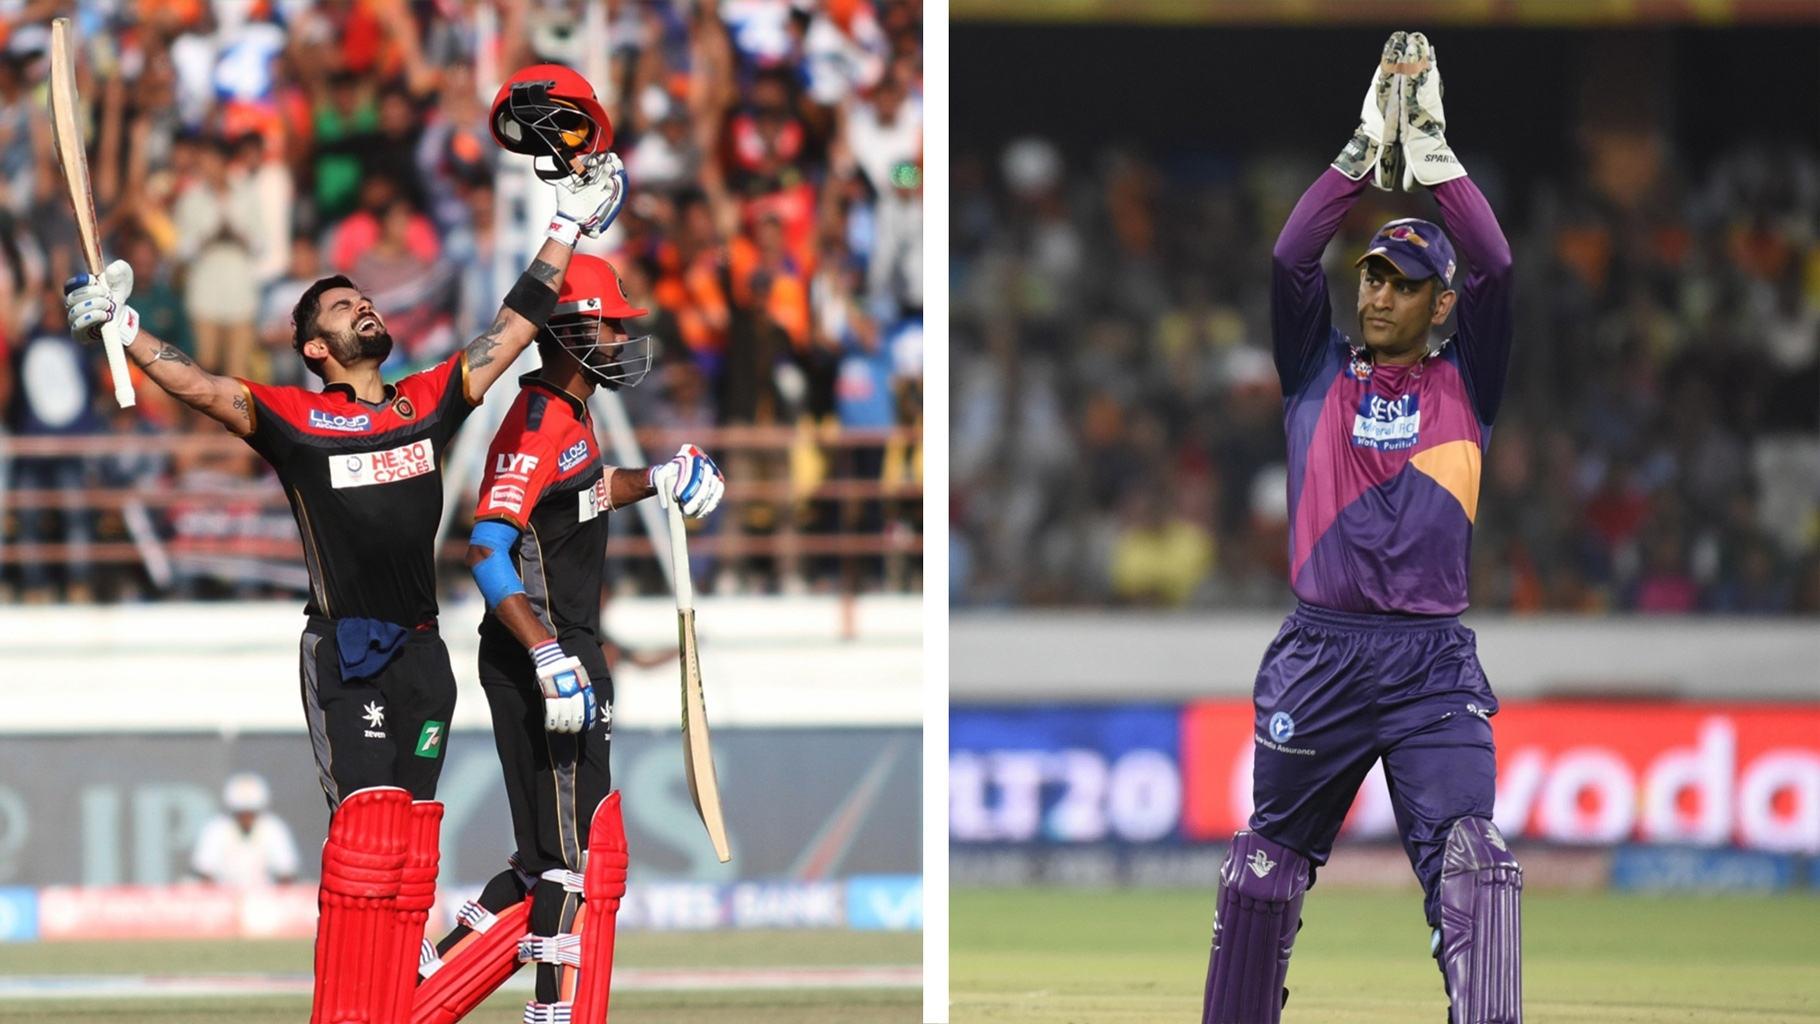 Struggling Teams RCB And Pune Supergiants To Face-Off On